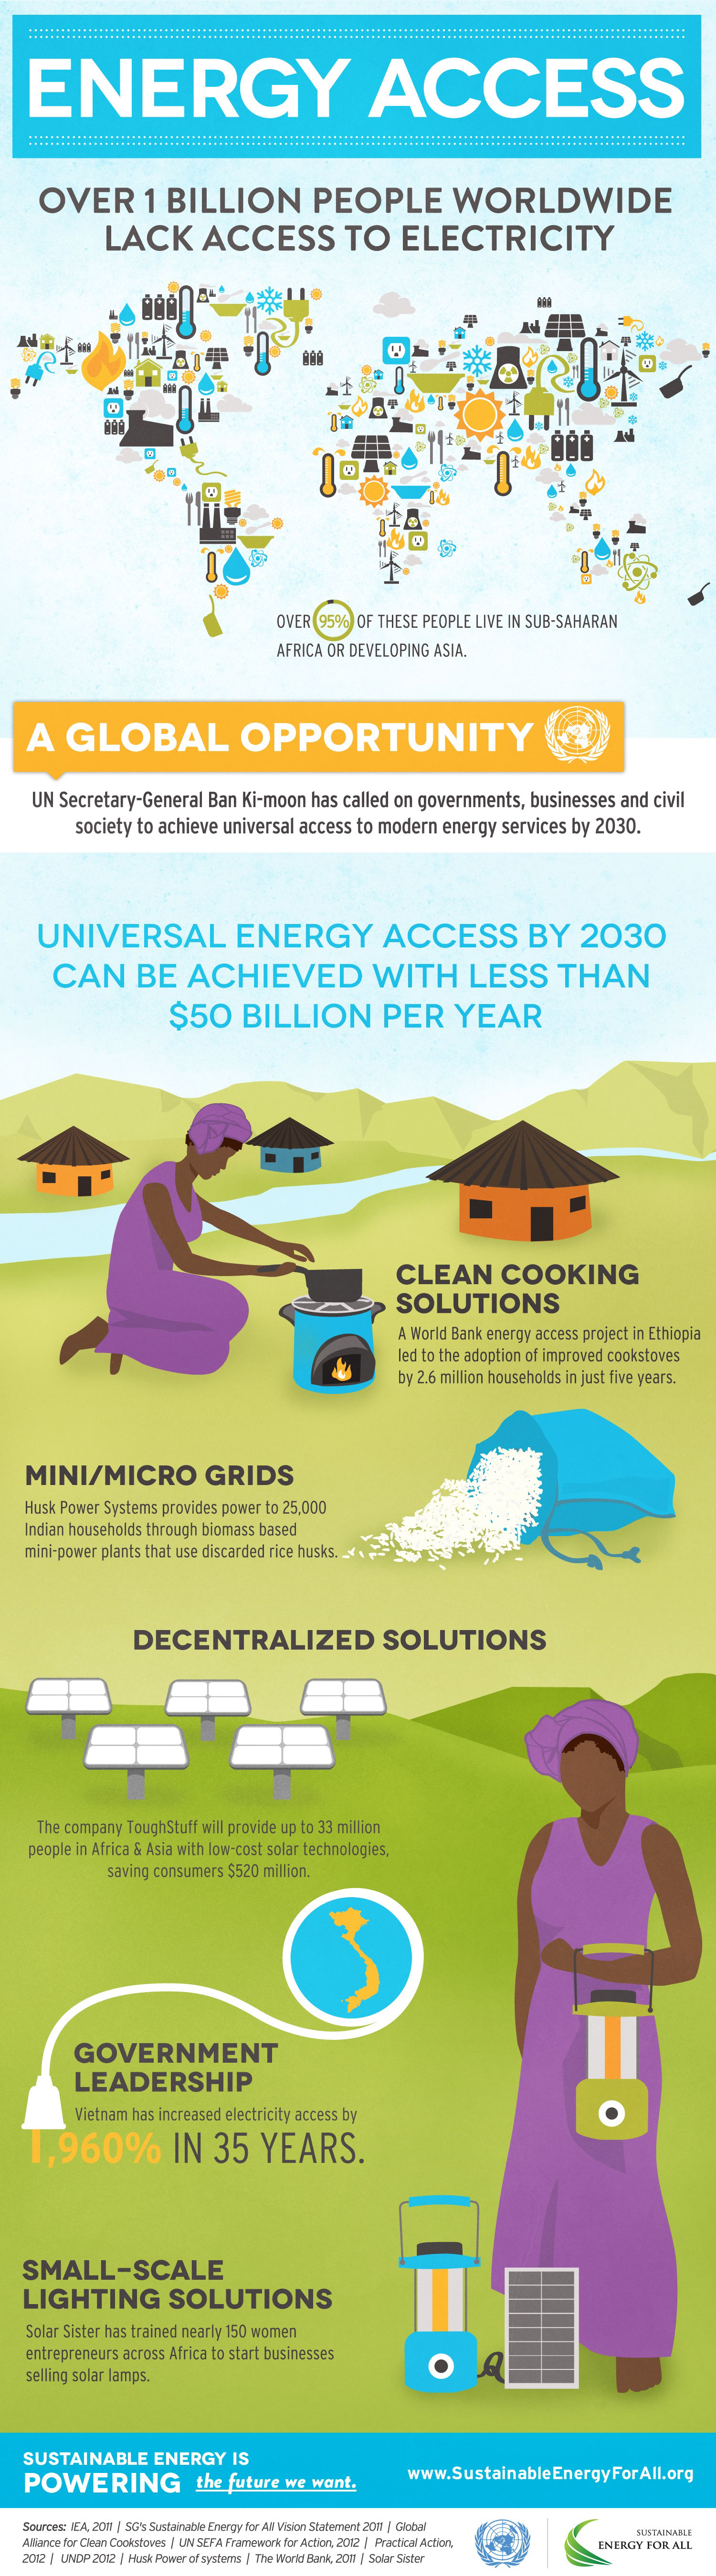 Worldwide-Energy-Access-infographic